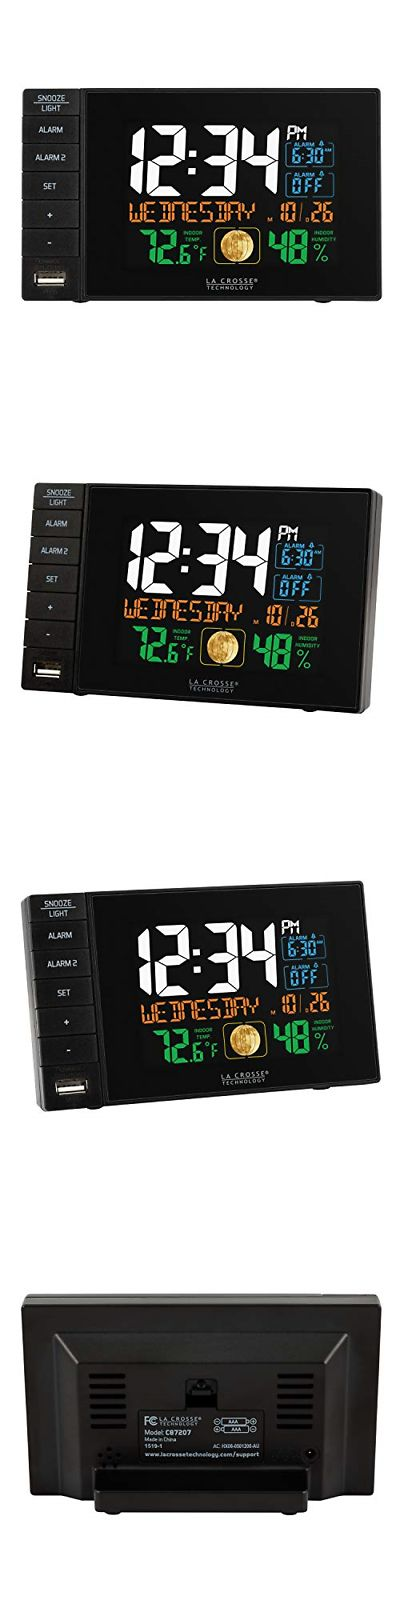 La Crosse Technology C87207 Color Dual Alarm Clock with USB Charging Port